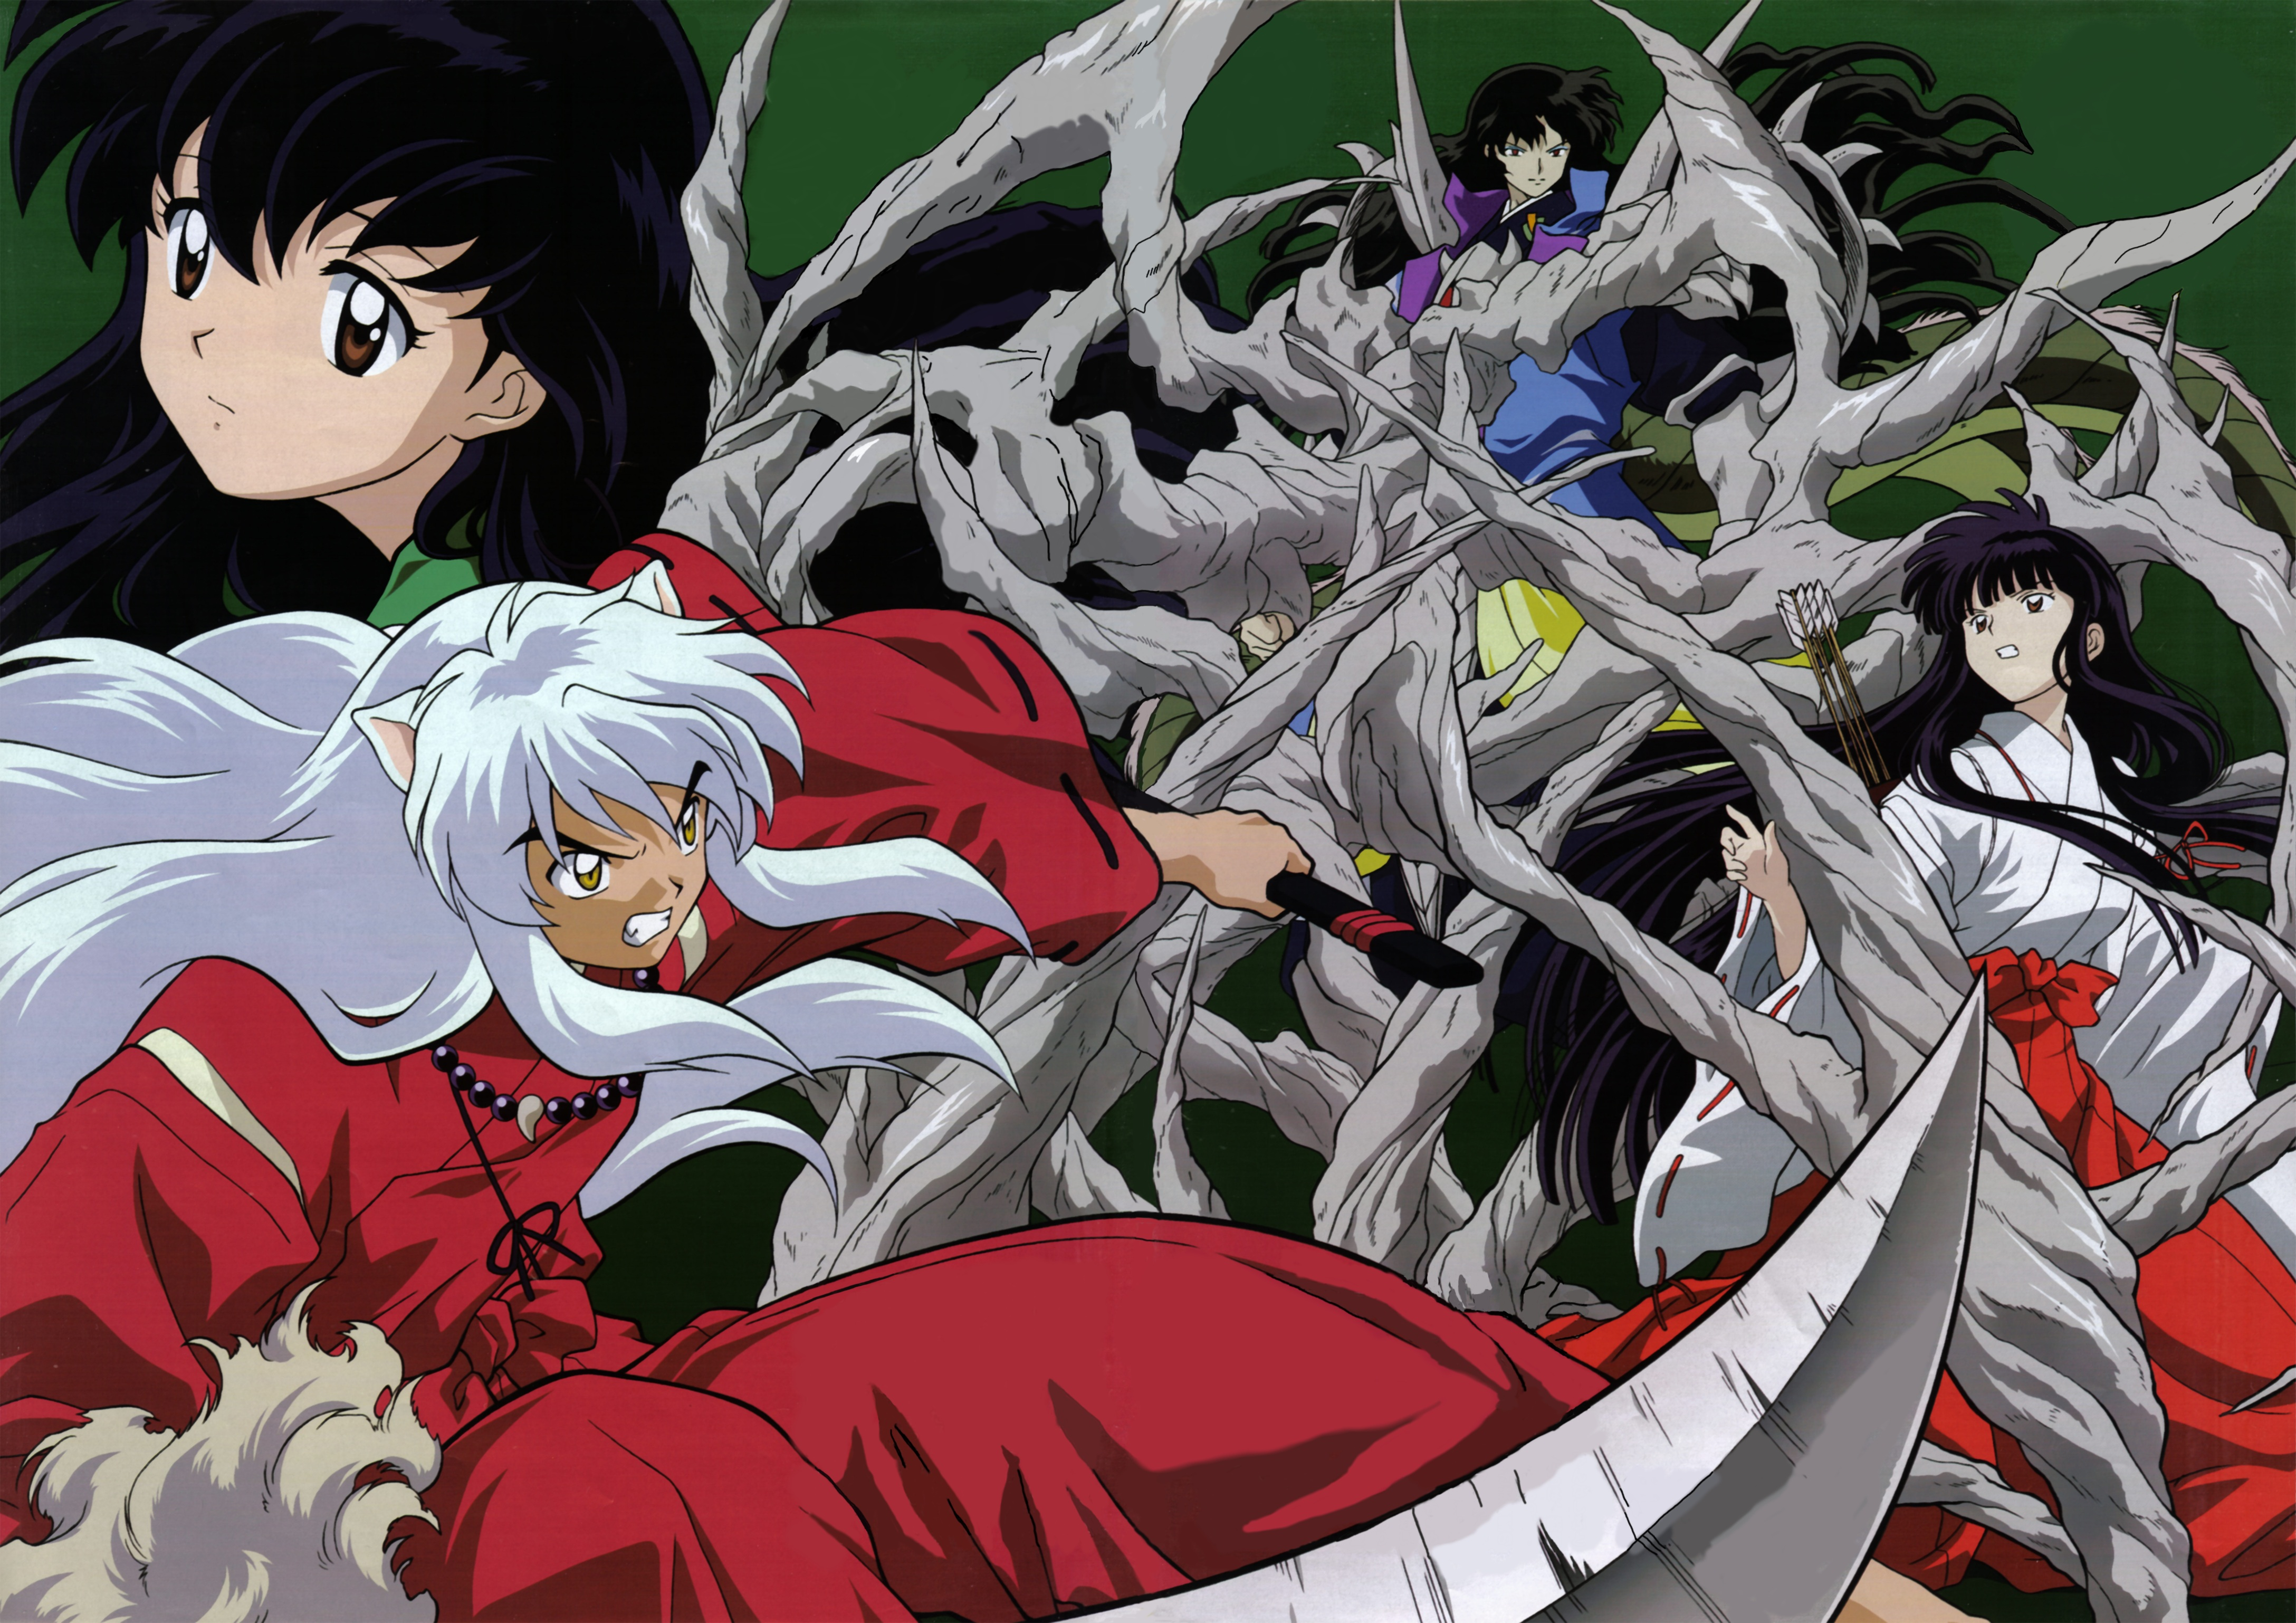 InuYasha 4k Ultra HD Wallpaper And Background